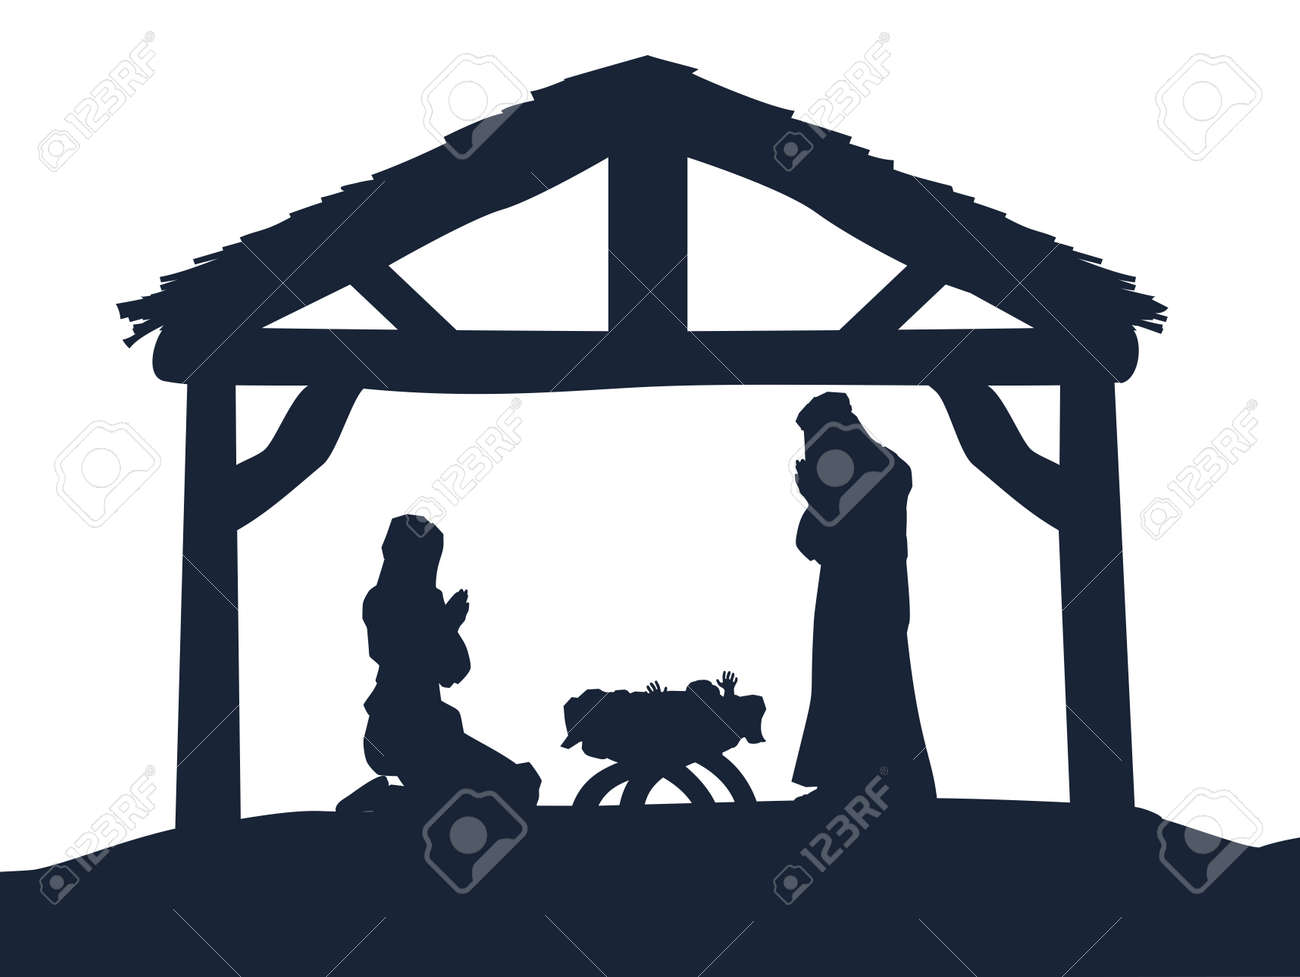 5 237 nativity scene stock vector illustration and royalty free rh 123rf com manger scene clip art free manager scene clip art